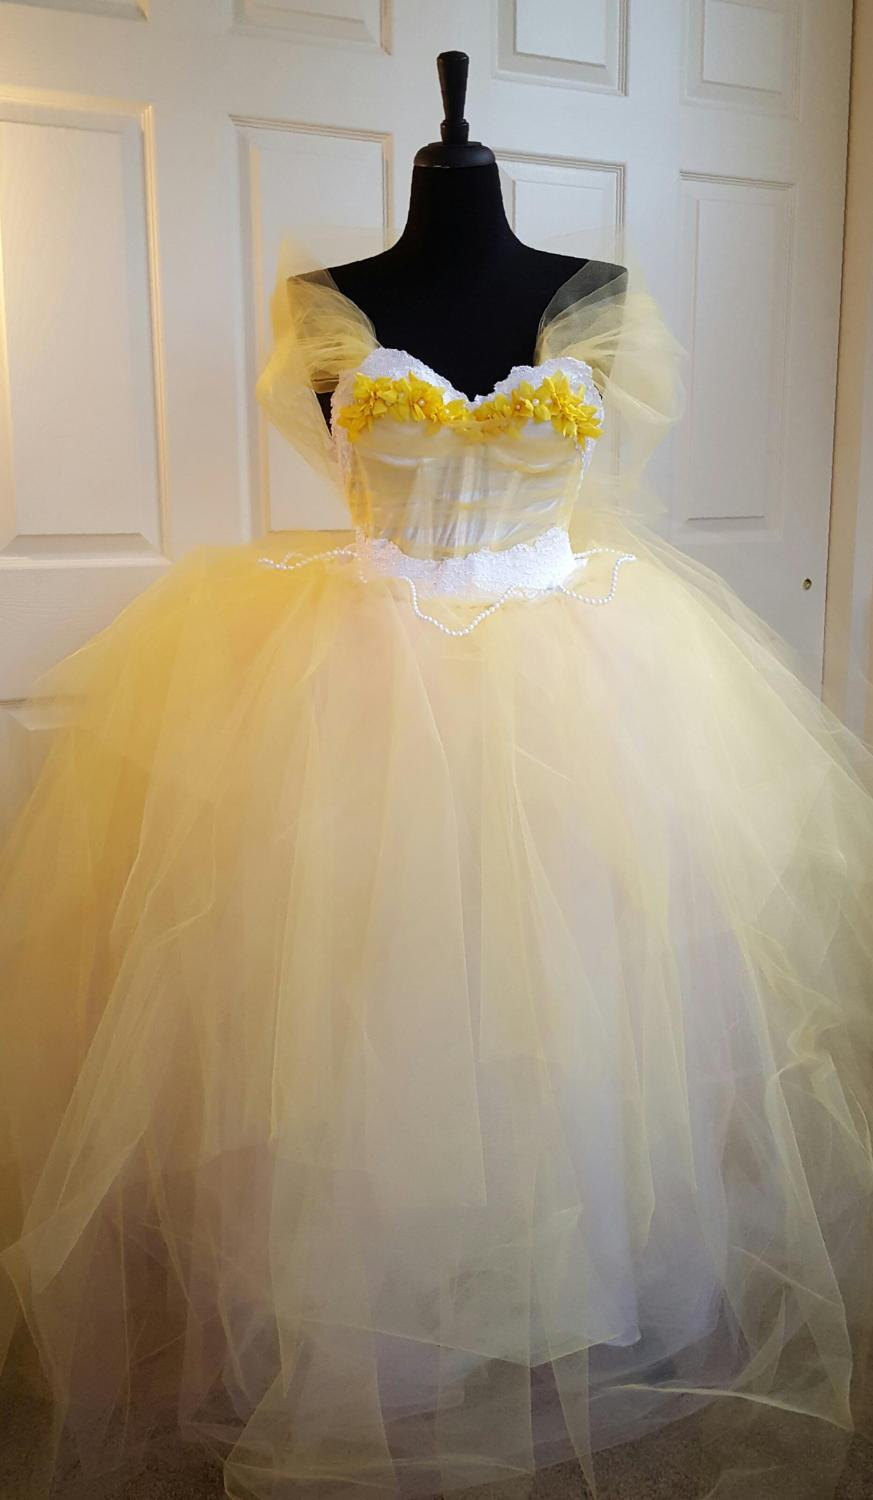 Wedding - Sample Gown / Belle Beauty & the Beast Style Yellow White Princess Lace Tulle Shawl Wedding Bridal BallGown Party Costume Quinceanera Prom